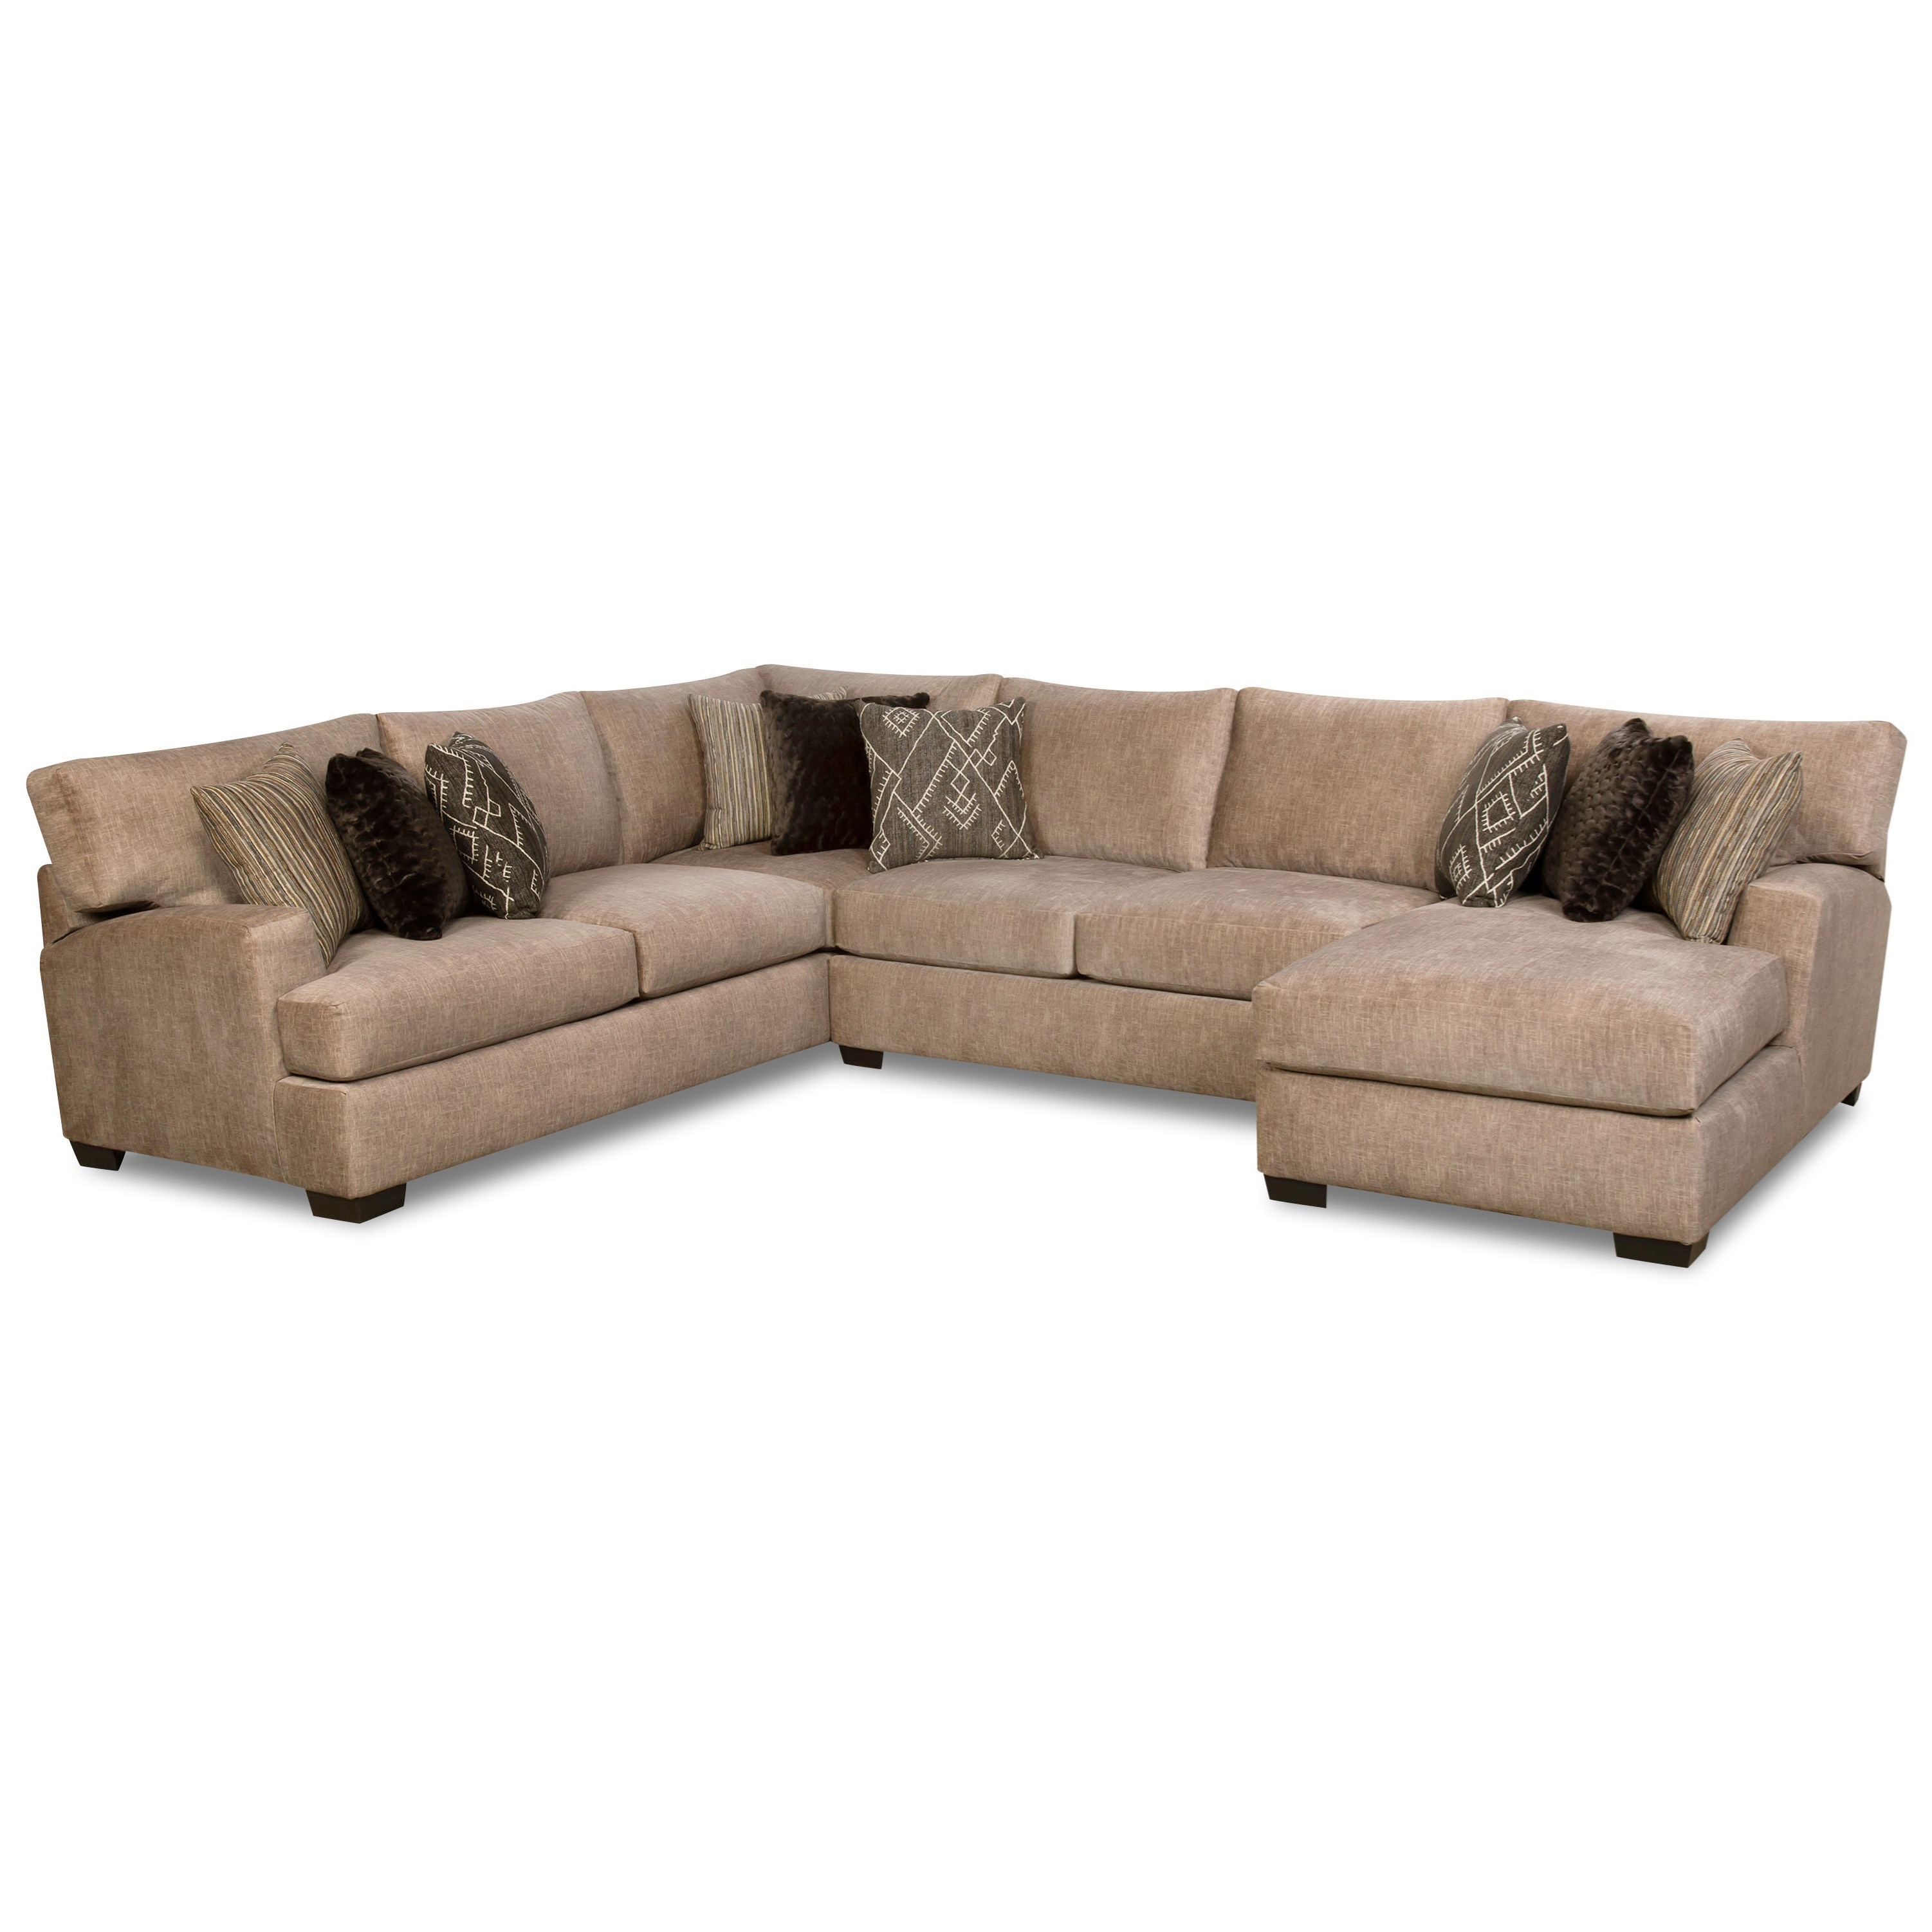 29D0 3-Piece Sectional by Corinthian at Story & Lee Furniture